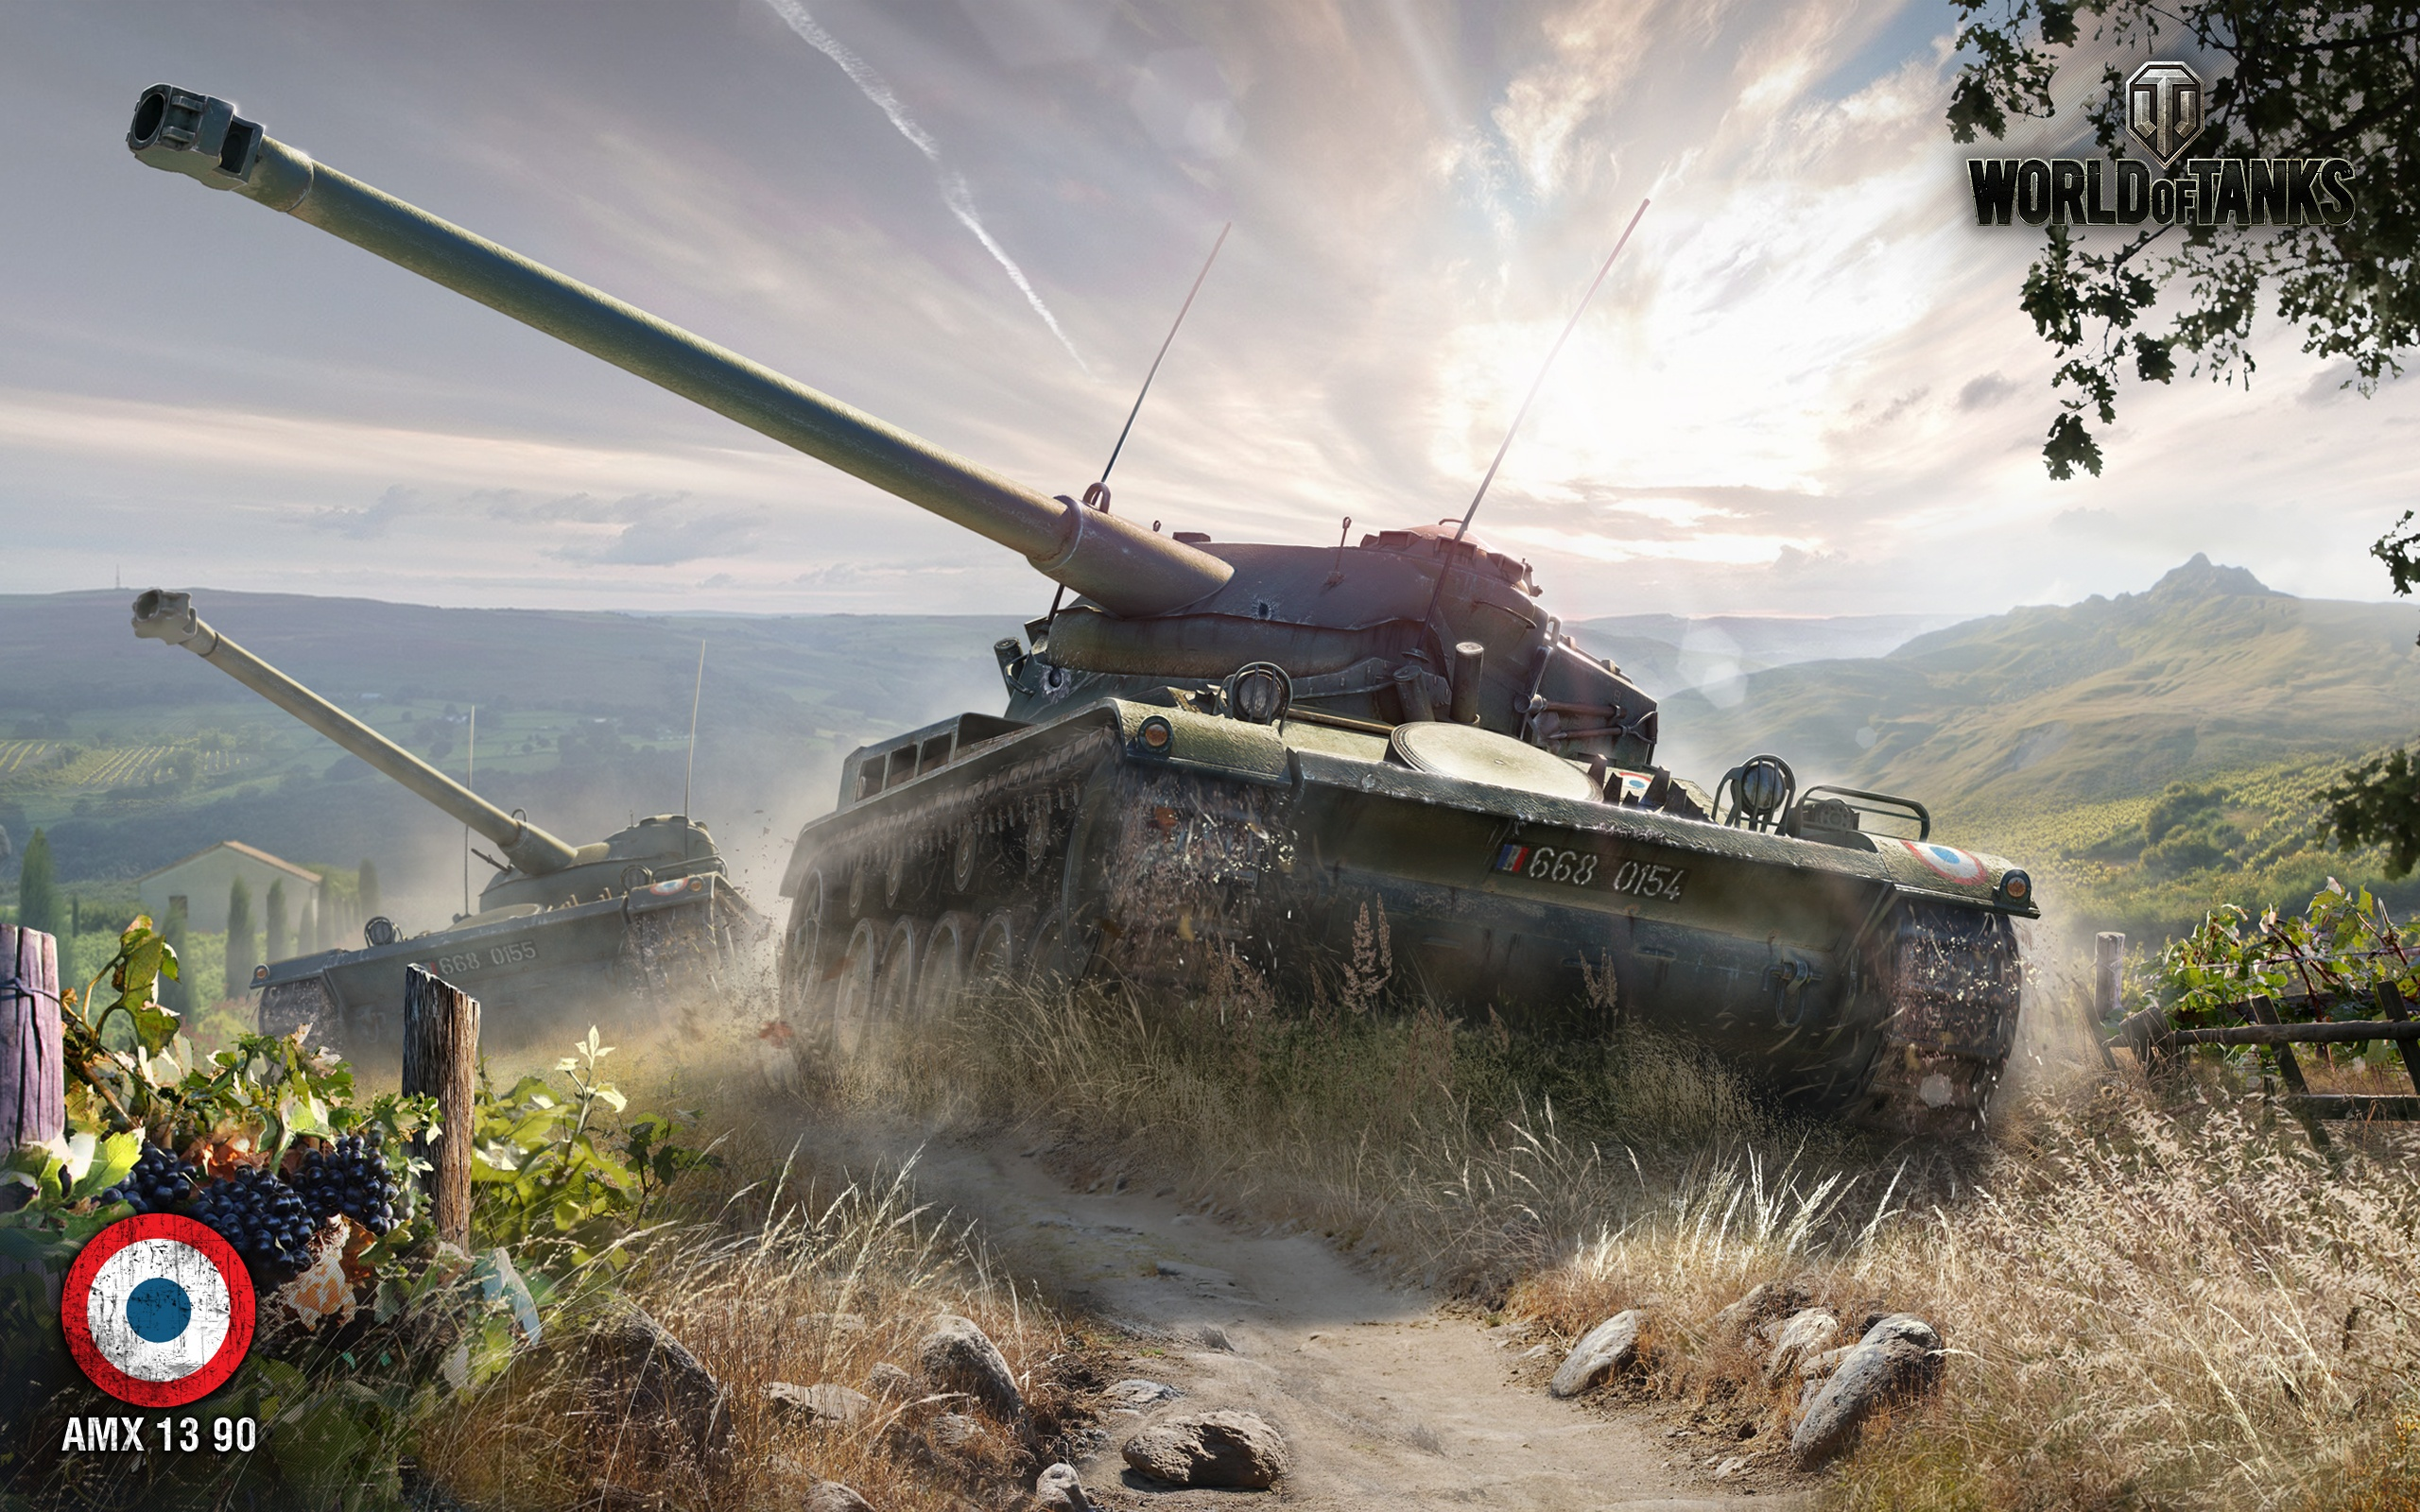 AMX 13 90 World Of Tanks Wallpapers In Jpg Format For Free Download